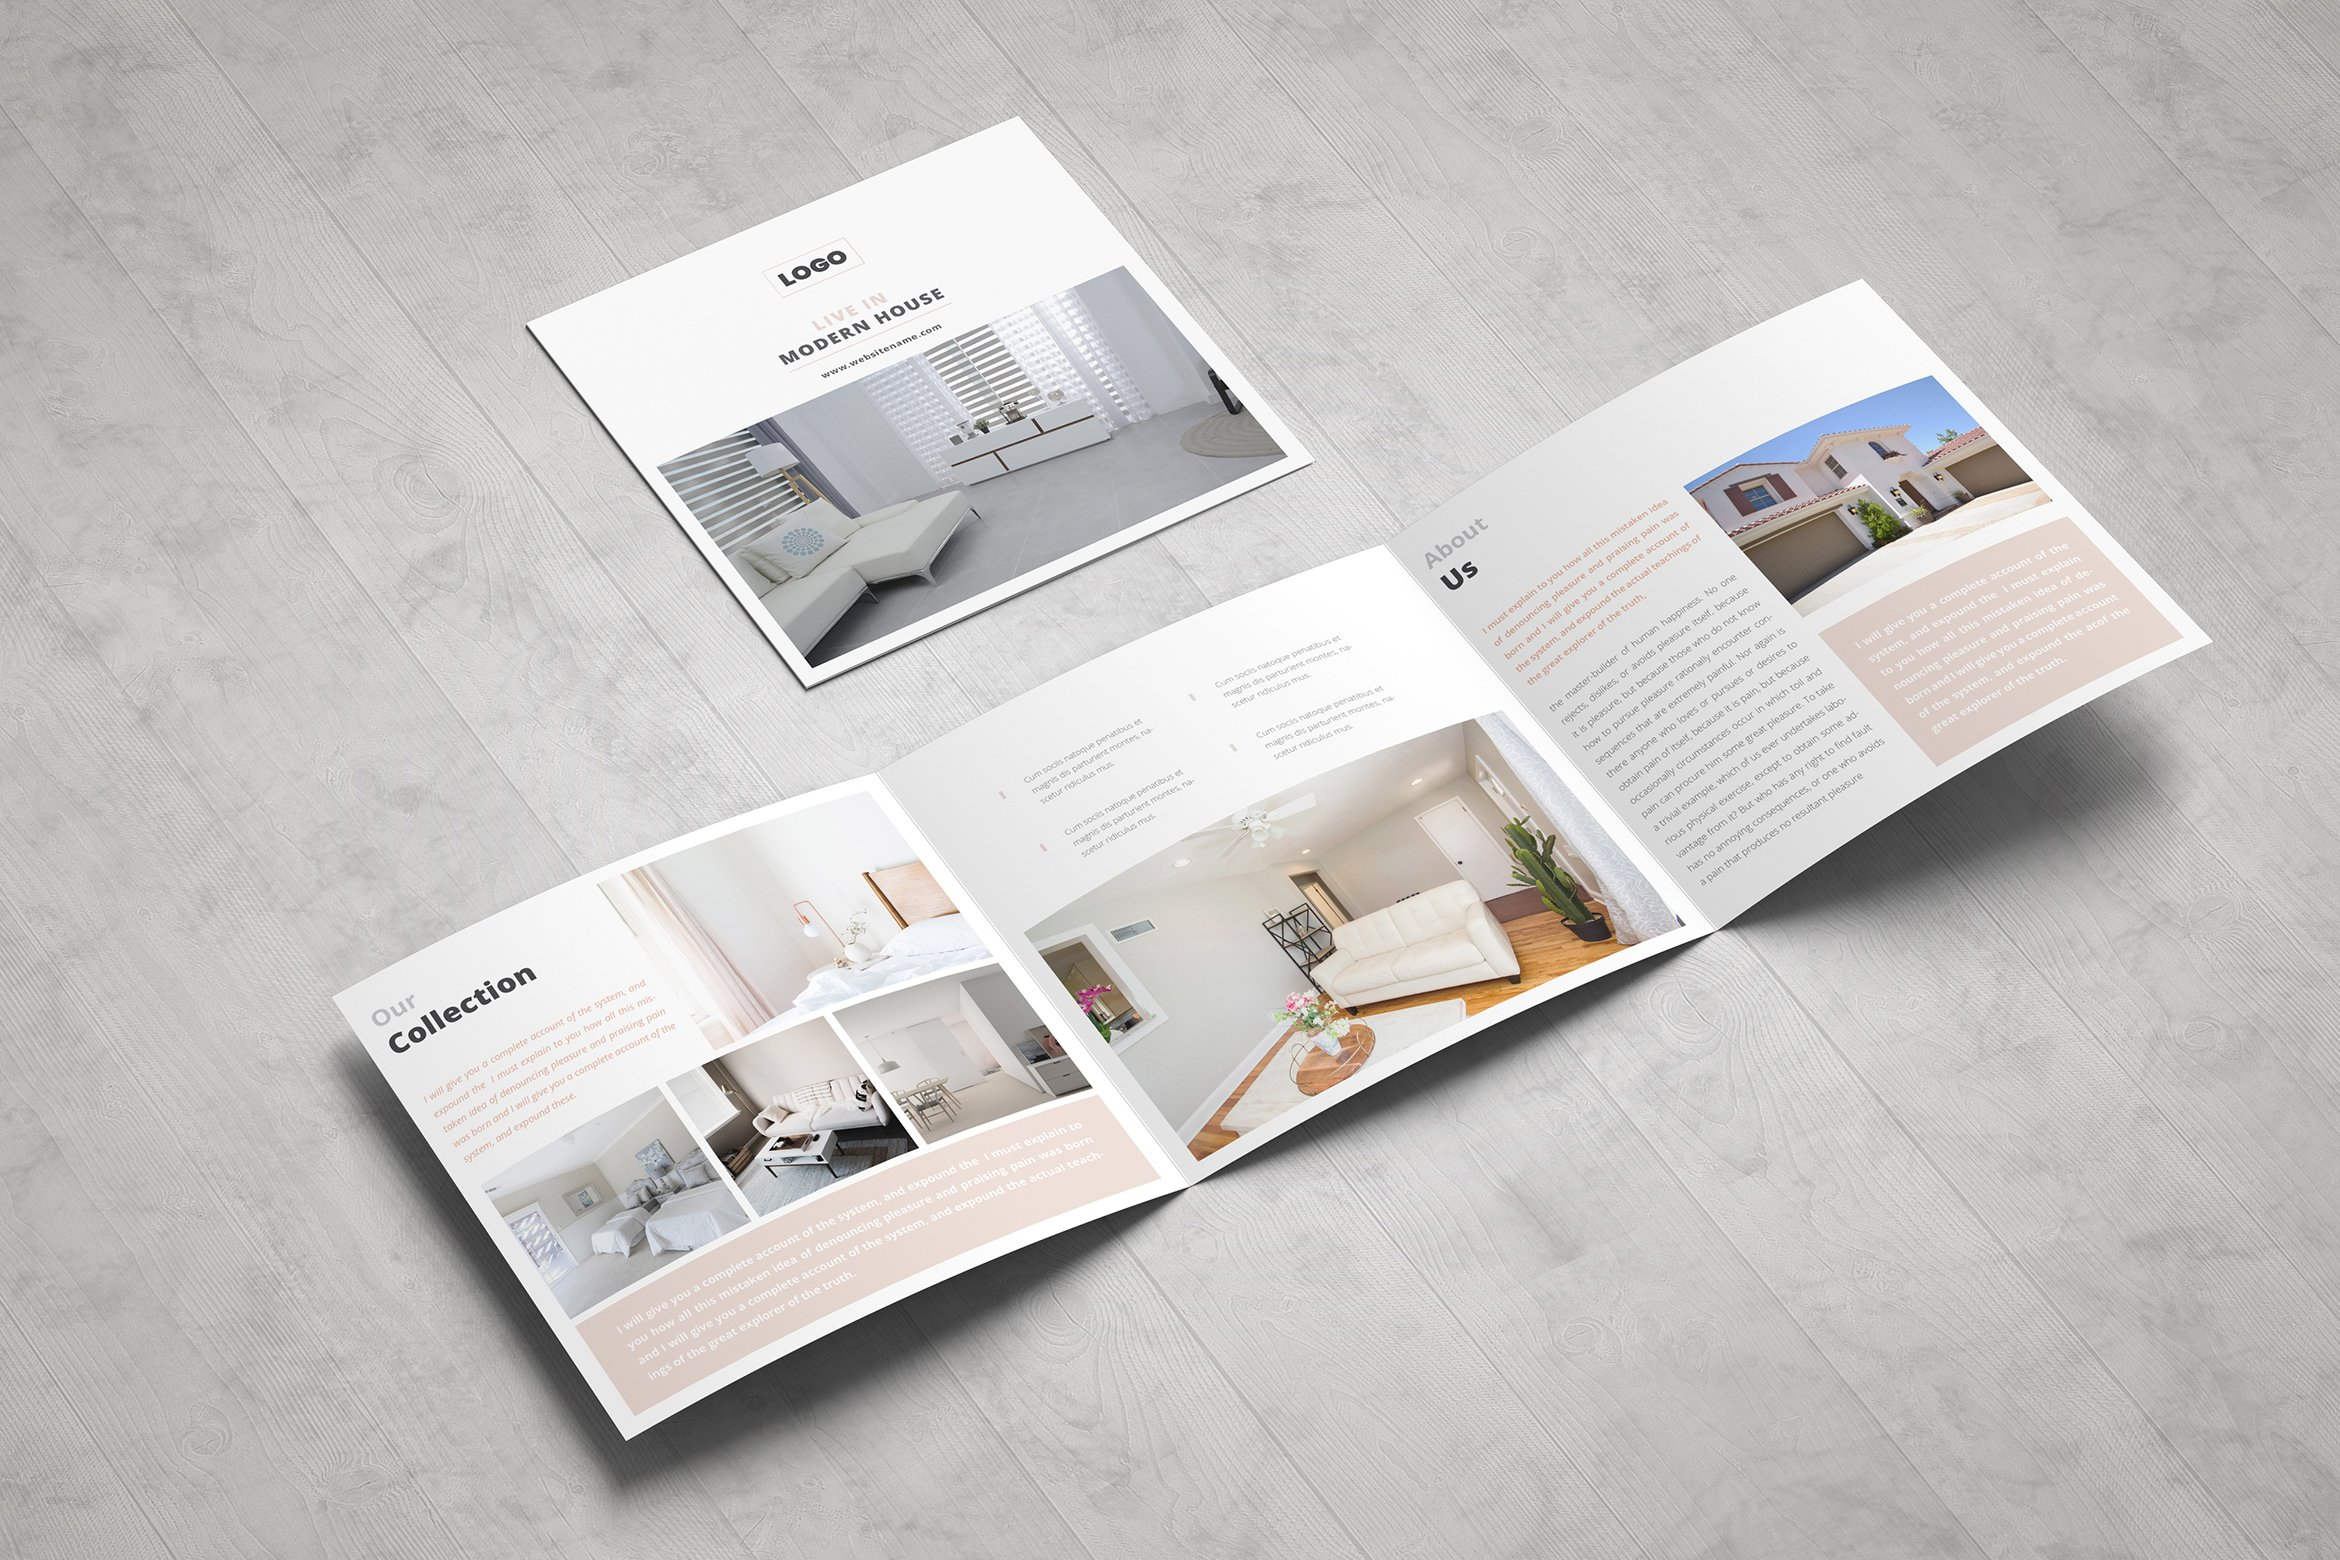 Real Estate Square Trifold Brochure by ZAAS